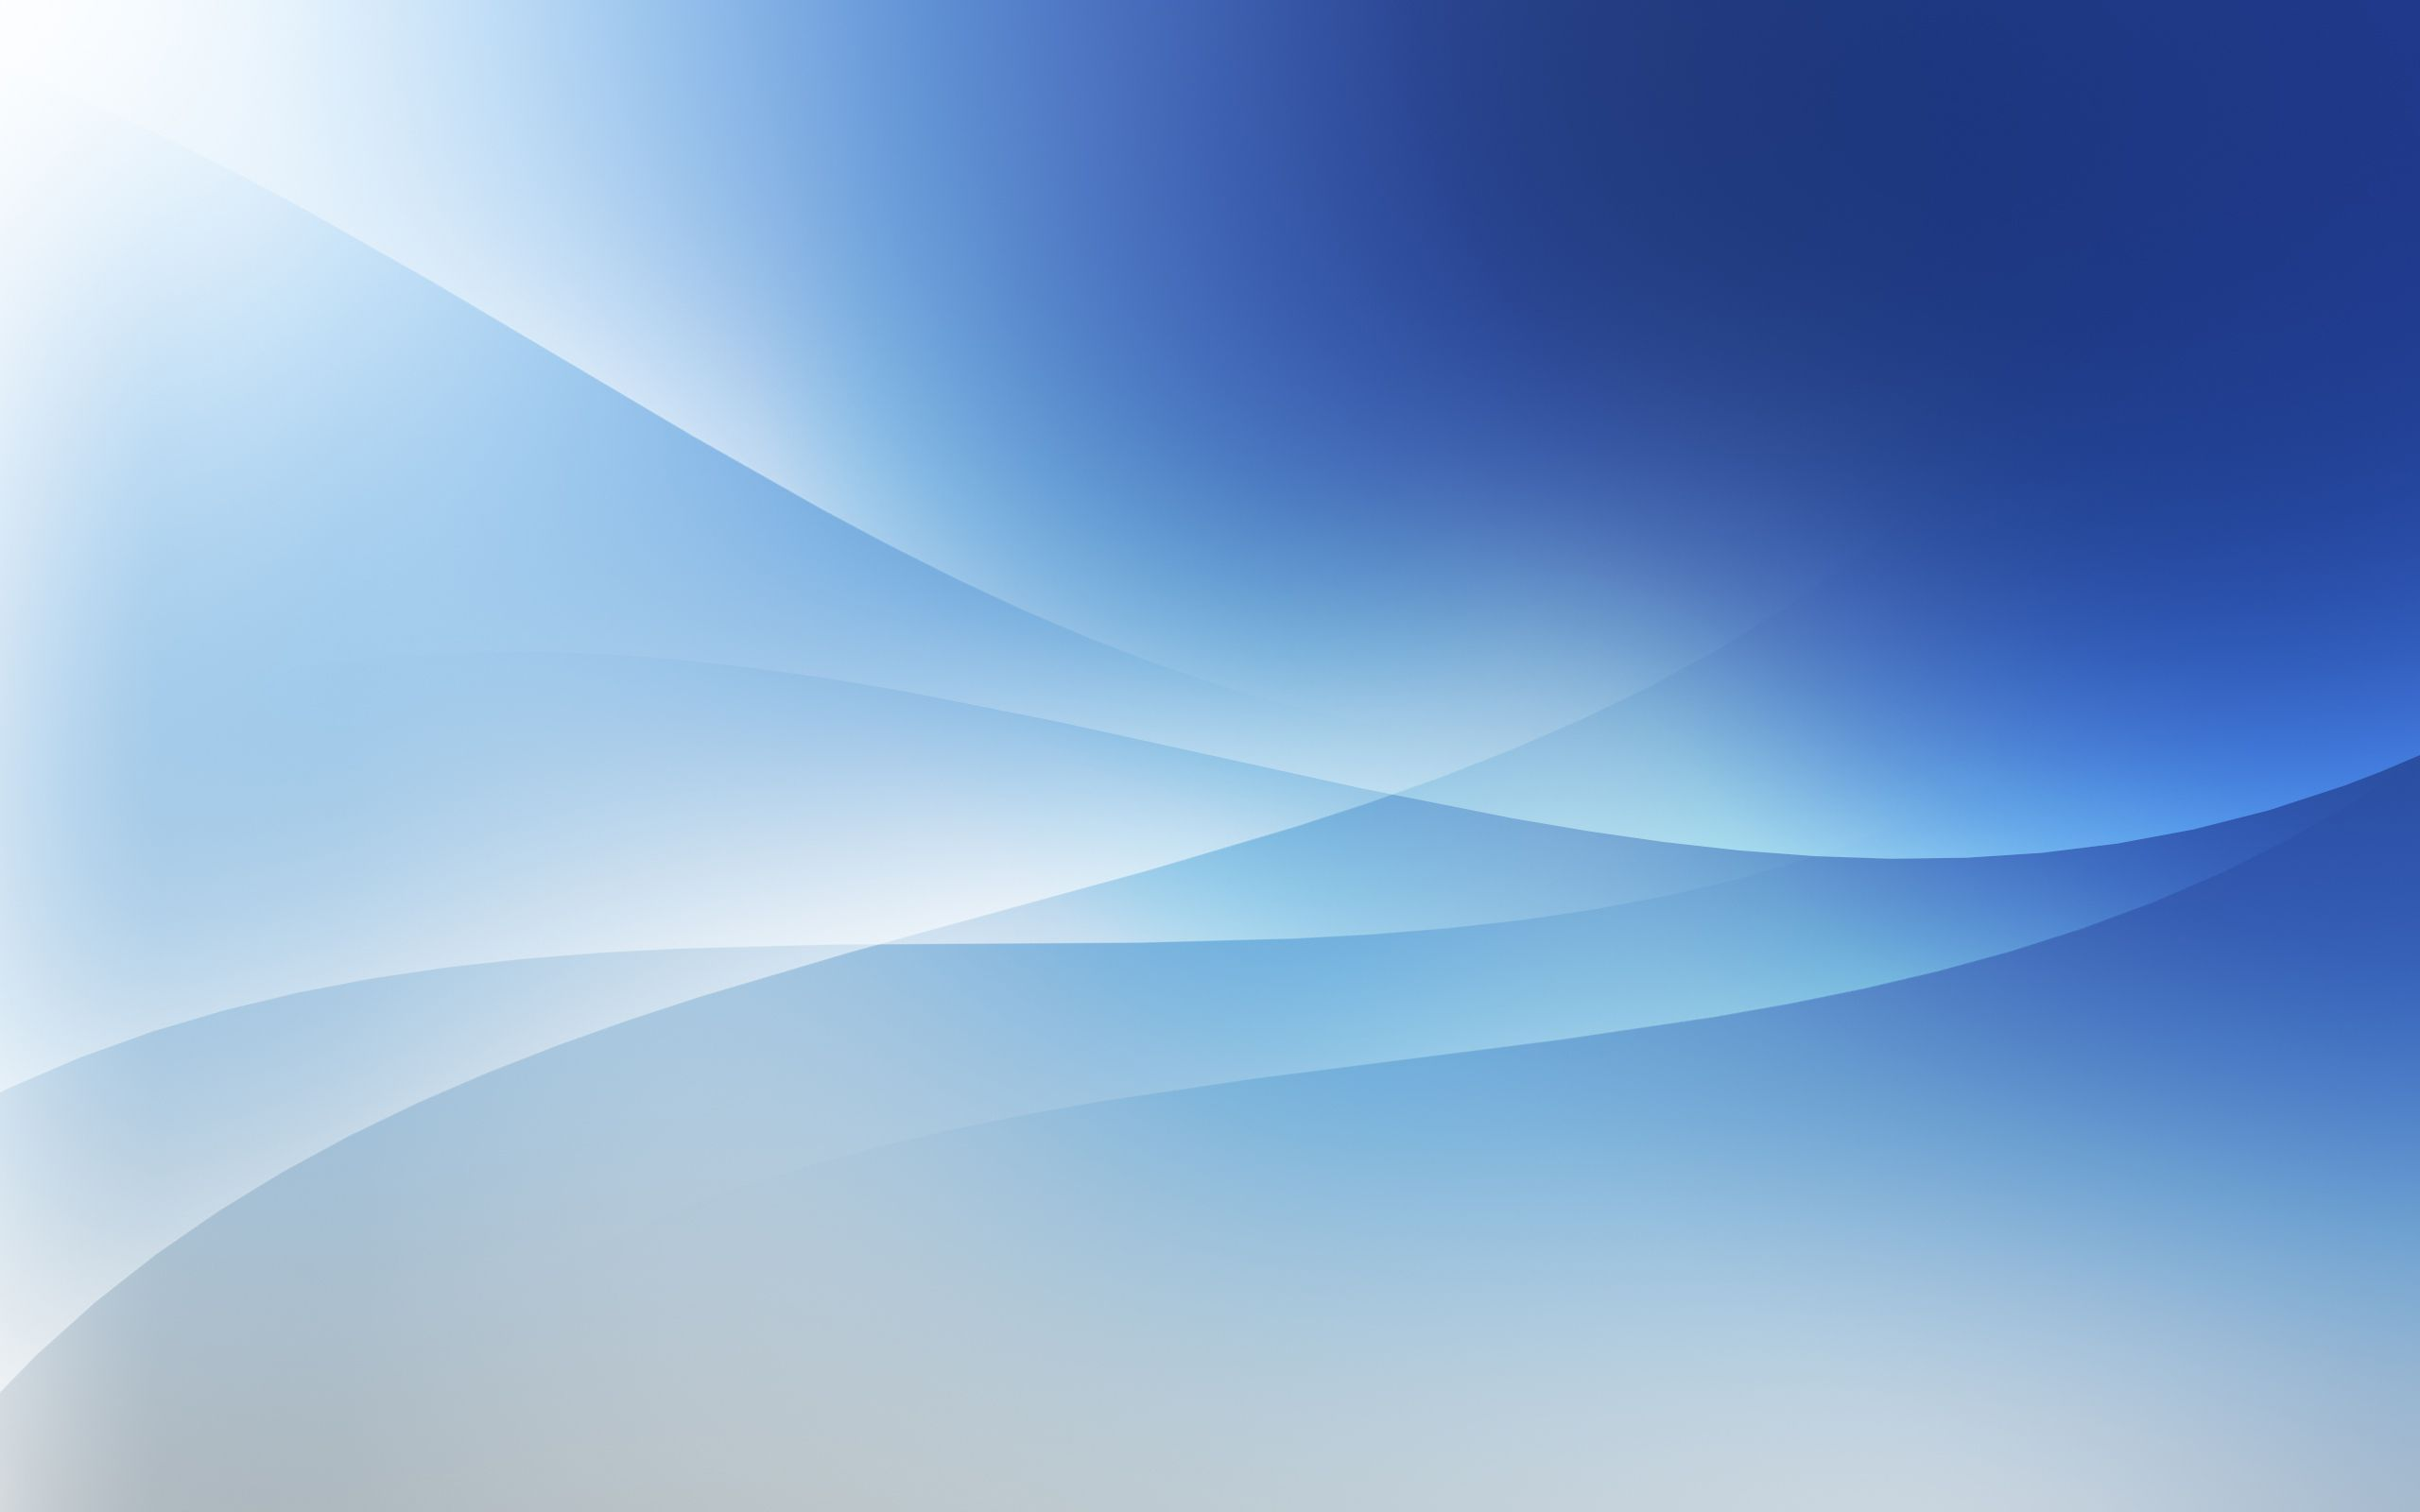 blue and white hd technology wallpaper